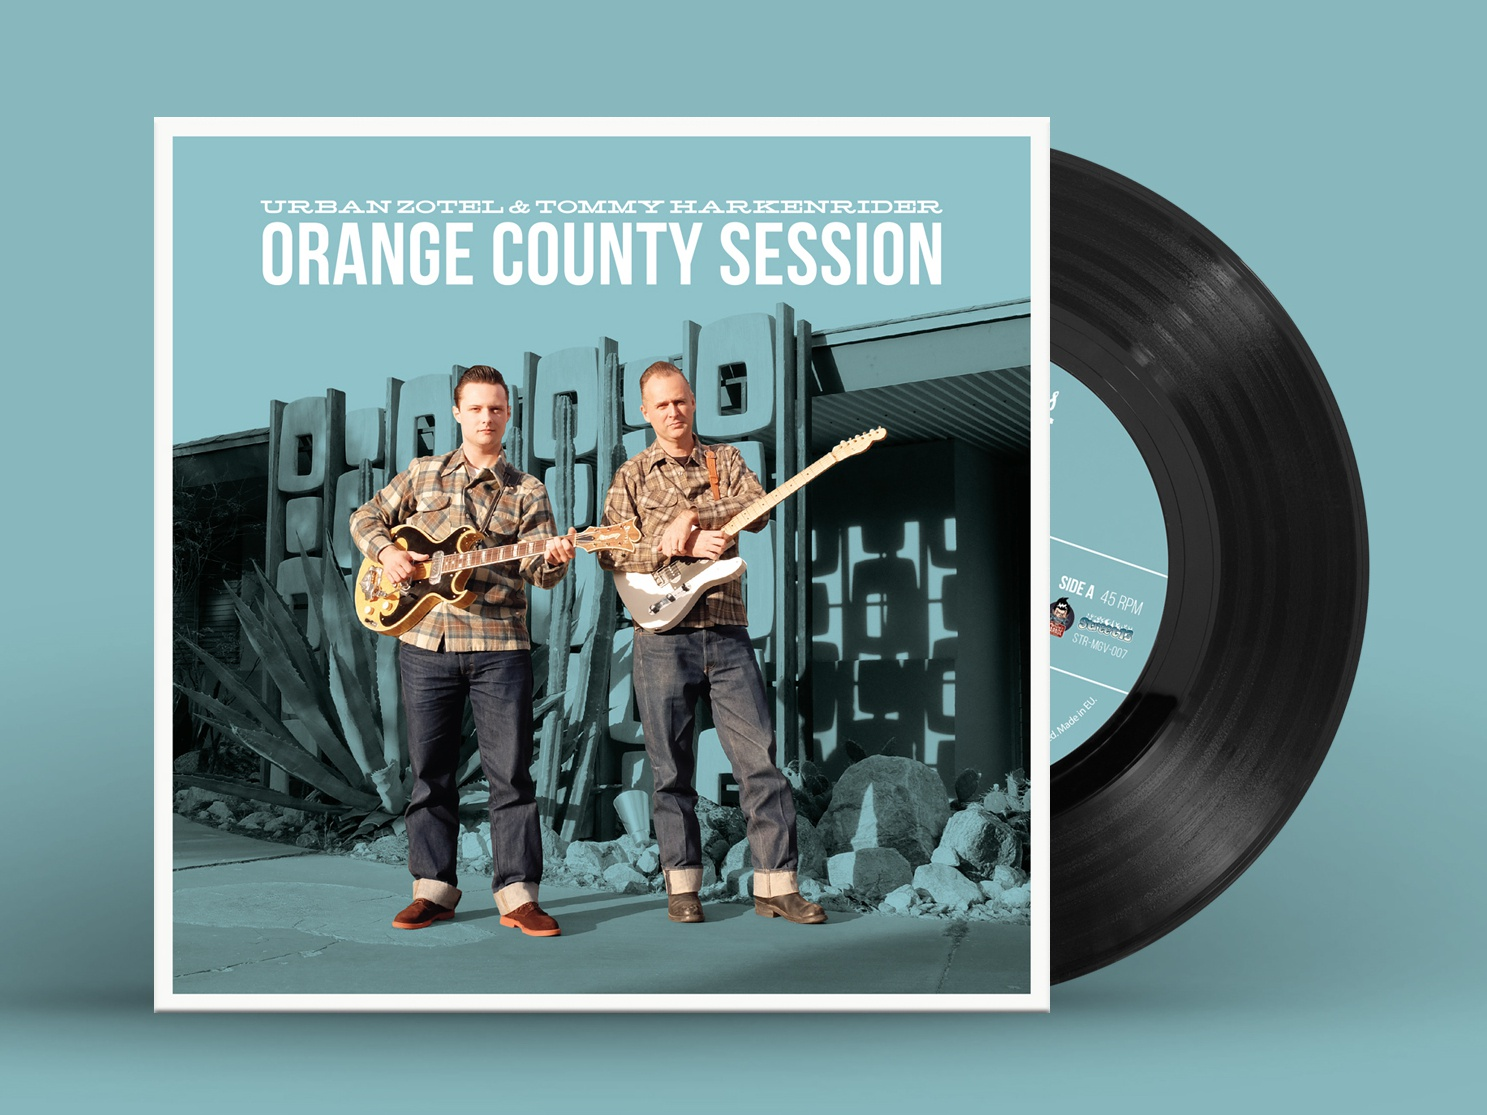 "Orange County Session 7"" Vinyl Cover band mid-century mid-century modern 1950s record cover cover vinyl cover music record vinyl design"